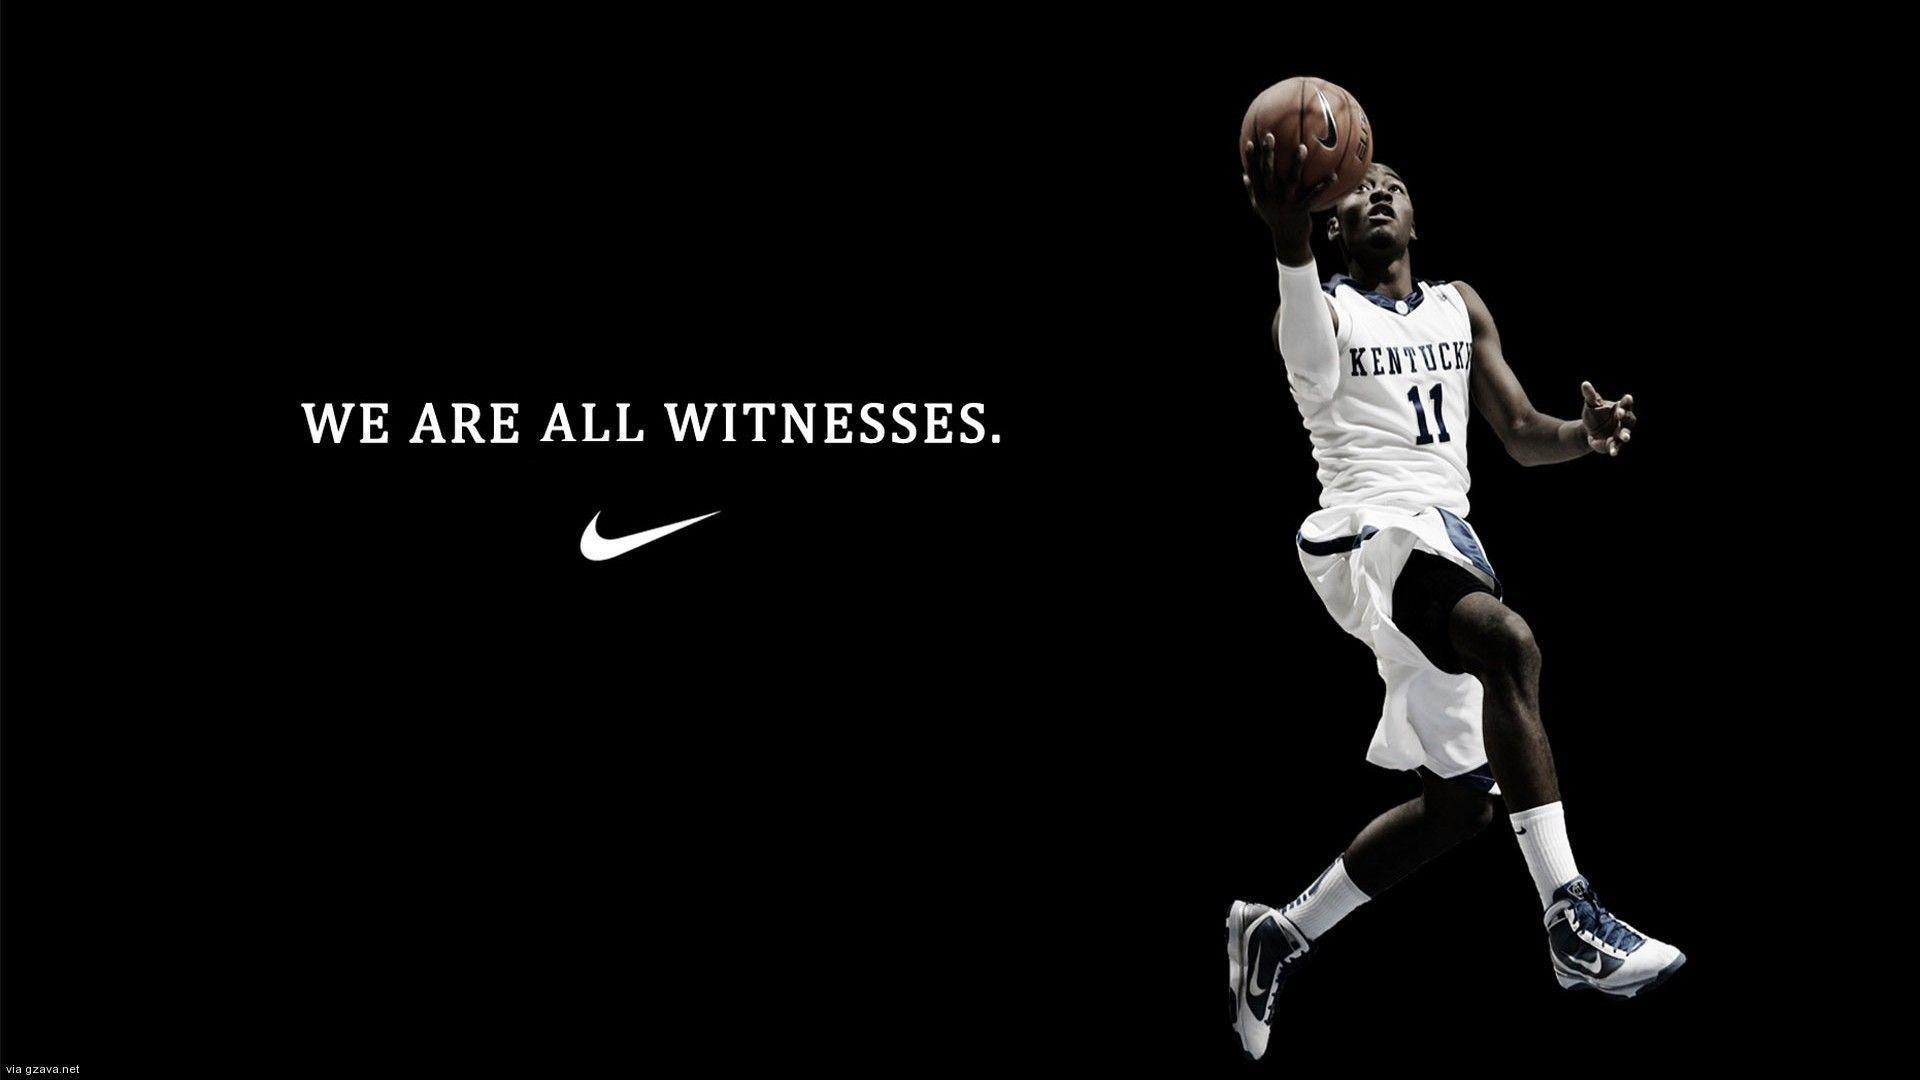 Nike Basketball Wallpapers 2015 - Wallpaper Cave